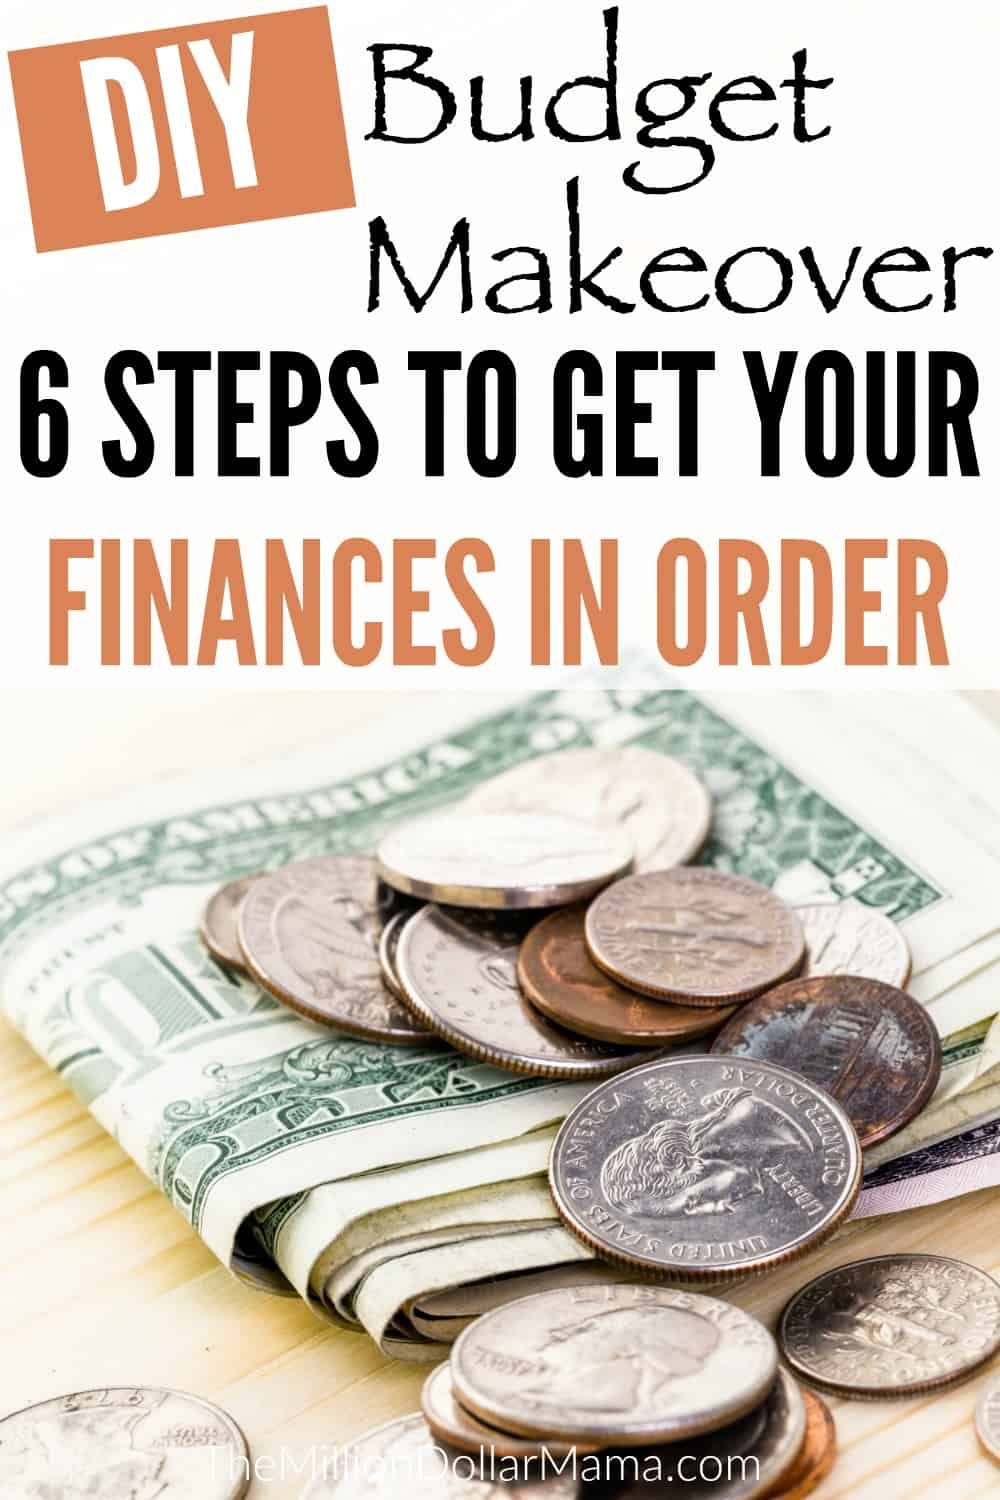 How to make a budget - this DIY budget makeover will help you create a budget and get your finances under control.